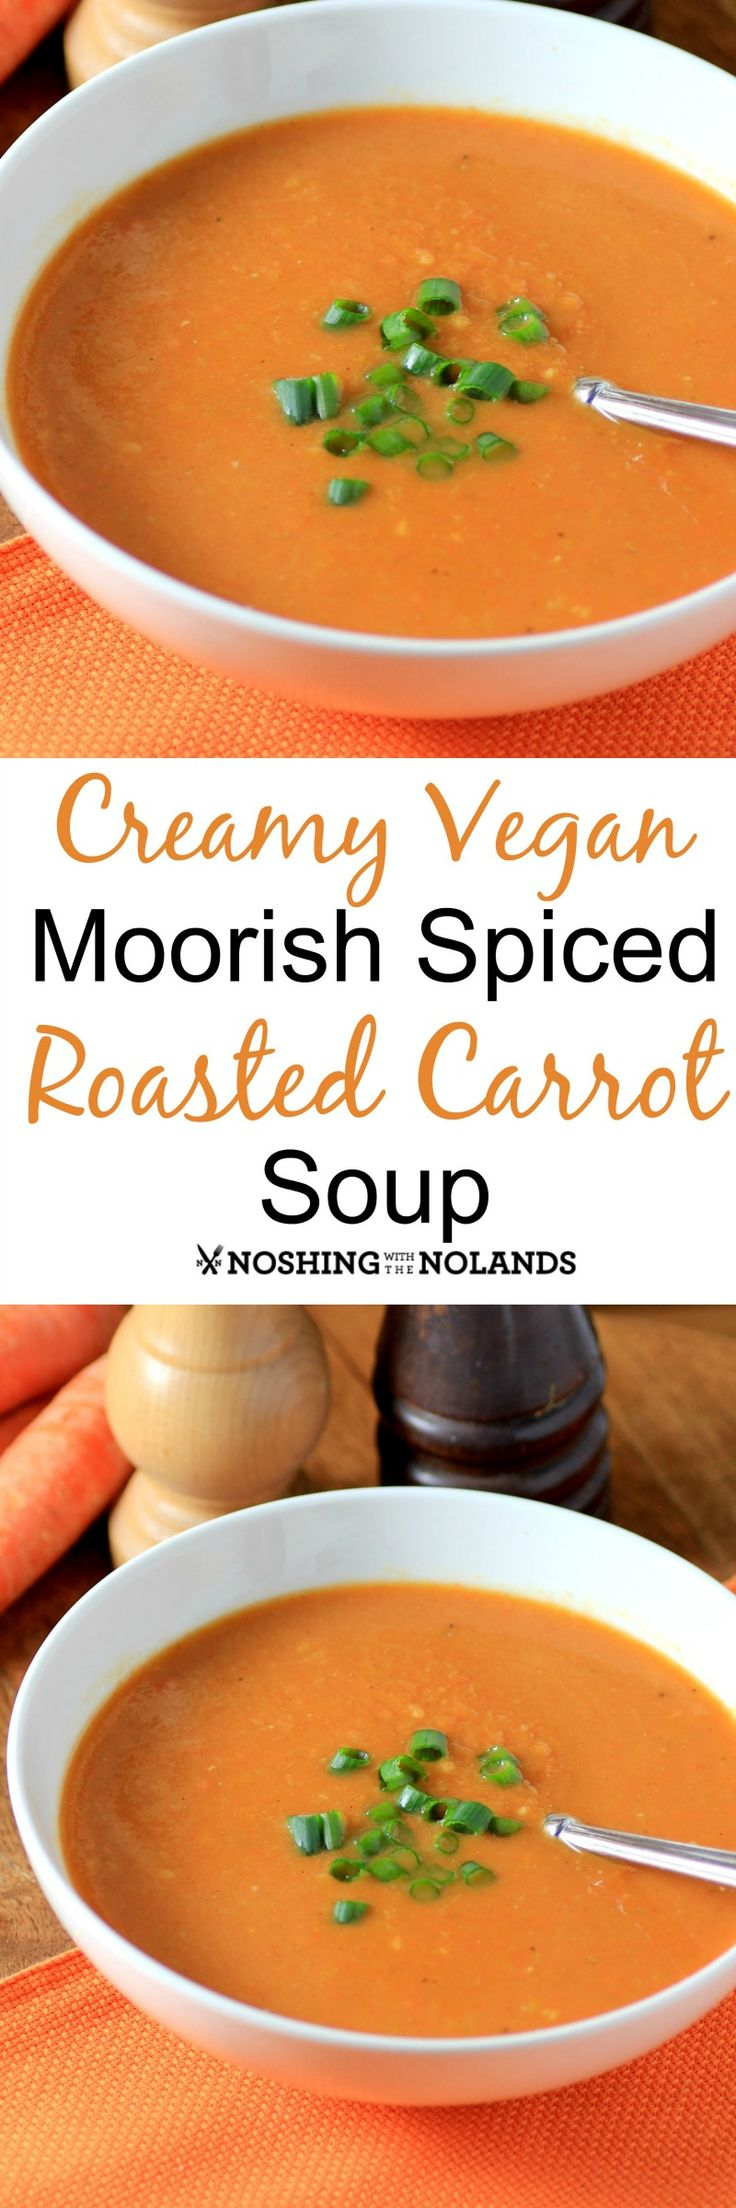 Creamy Vegan Moorish Spiced Roasted Carrot Soup by Noshing With The Nolands is full of flavor and nutritious too! Made using the new non-dairy Veggemo this soup is sublime on a cold winter's day!